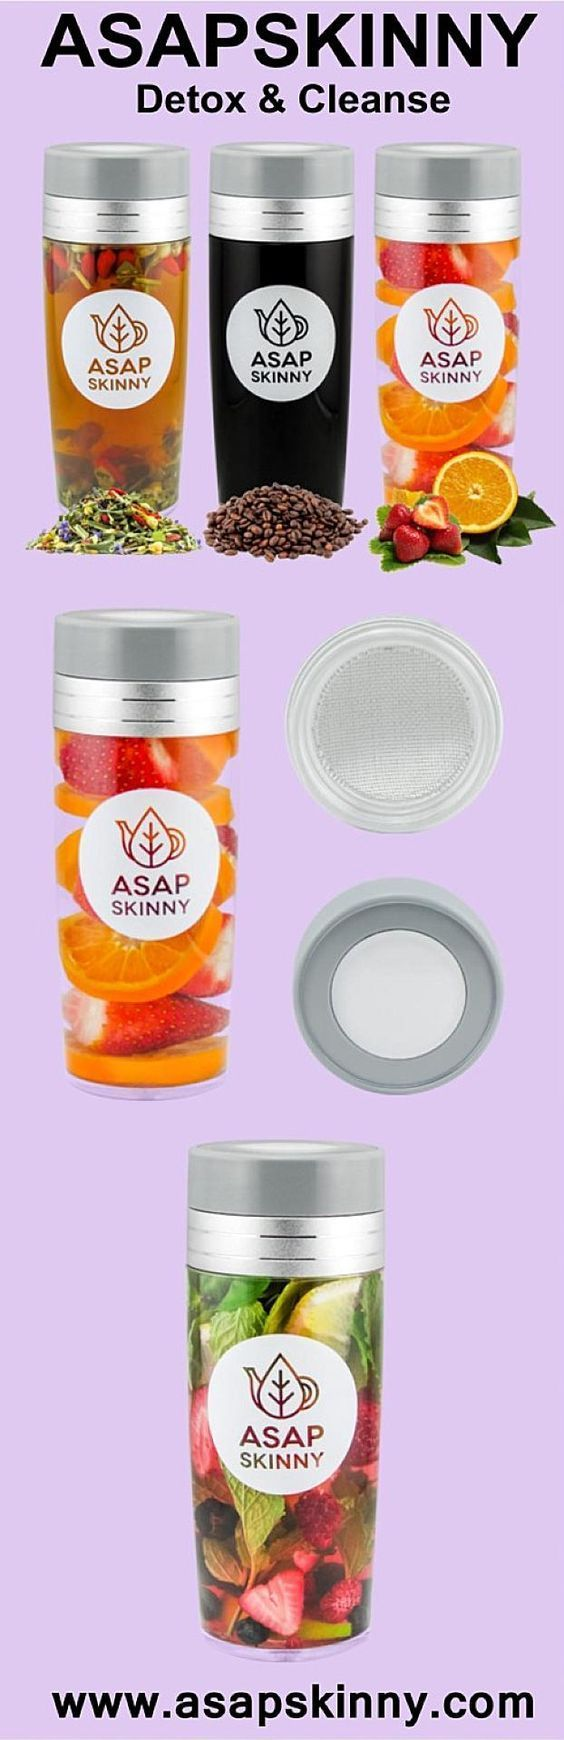 Detox & Cleanse with ASAPSKINNY! Our Versatile Tea Infuser Bottle comes with a FREE Removable Mesh Strainer/Steeper. Now You can Detox Any Time, Anywhere! Use it to Make Loose Leaf Tea, Fruit Infused Water or Coffee. Heal Your Body with Ease. Hurry, Selli